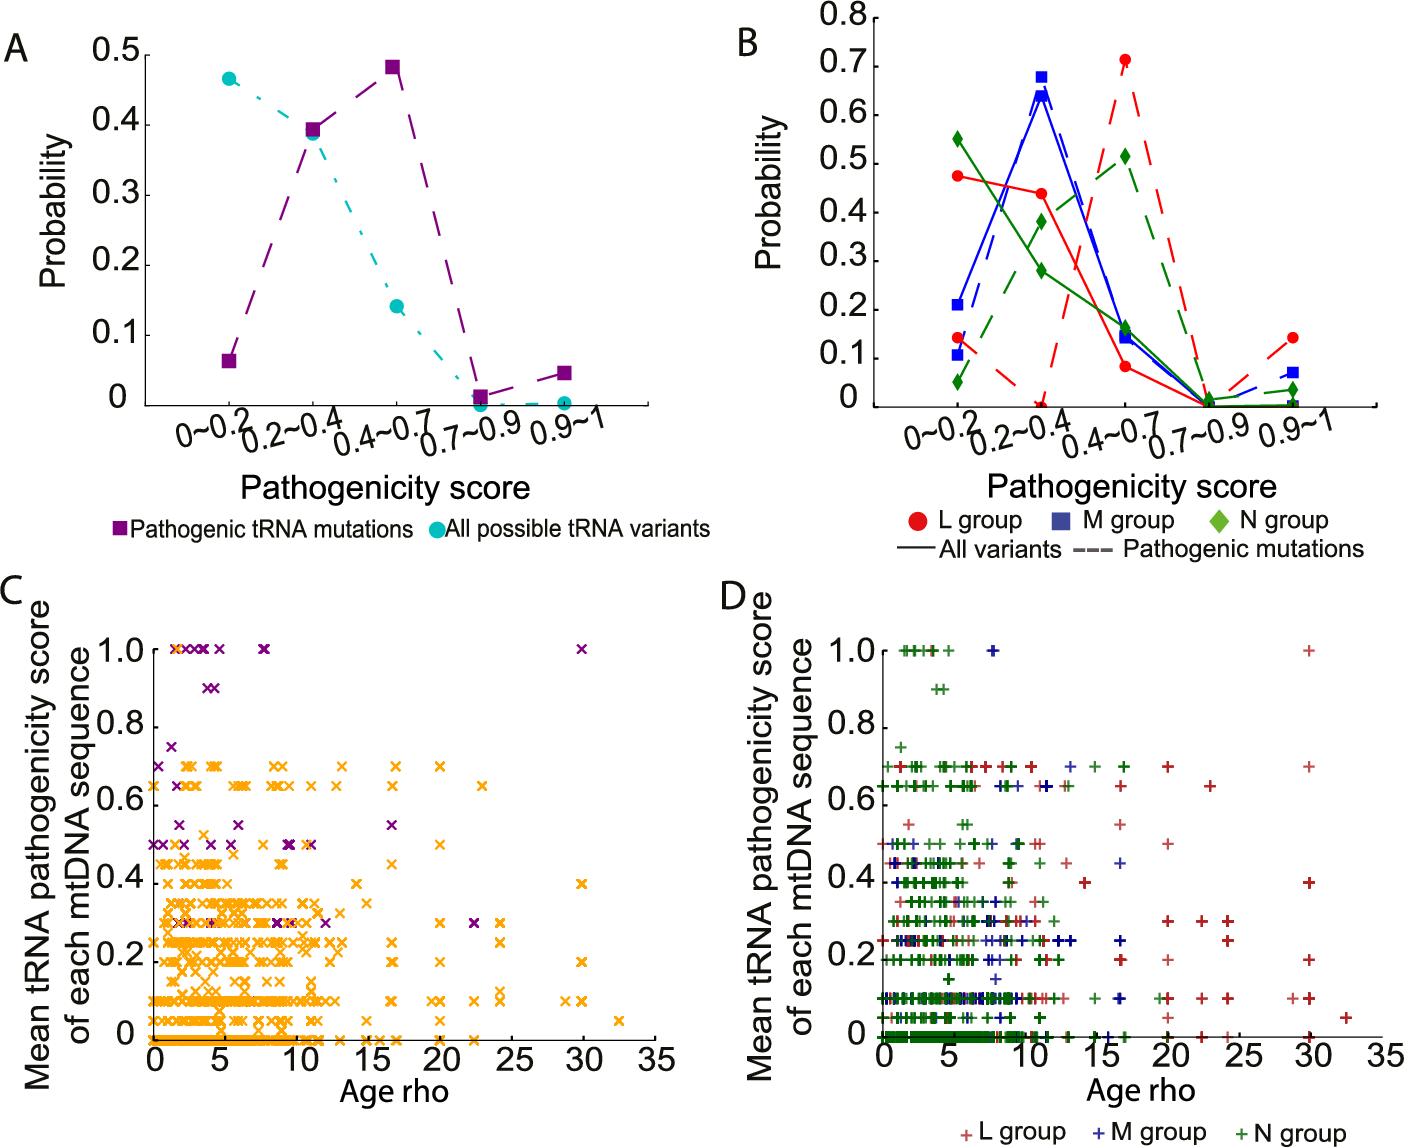 Pathogenicity of mtDNA tRNA variants in 30,506 mtDNA sequences.